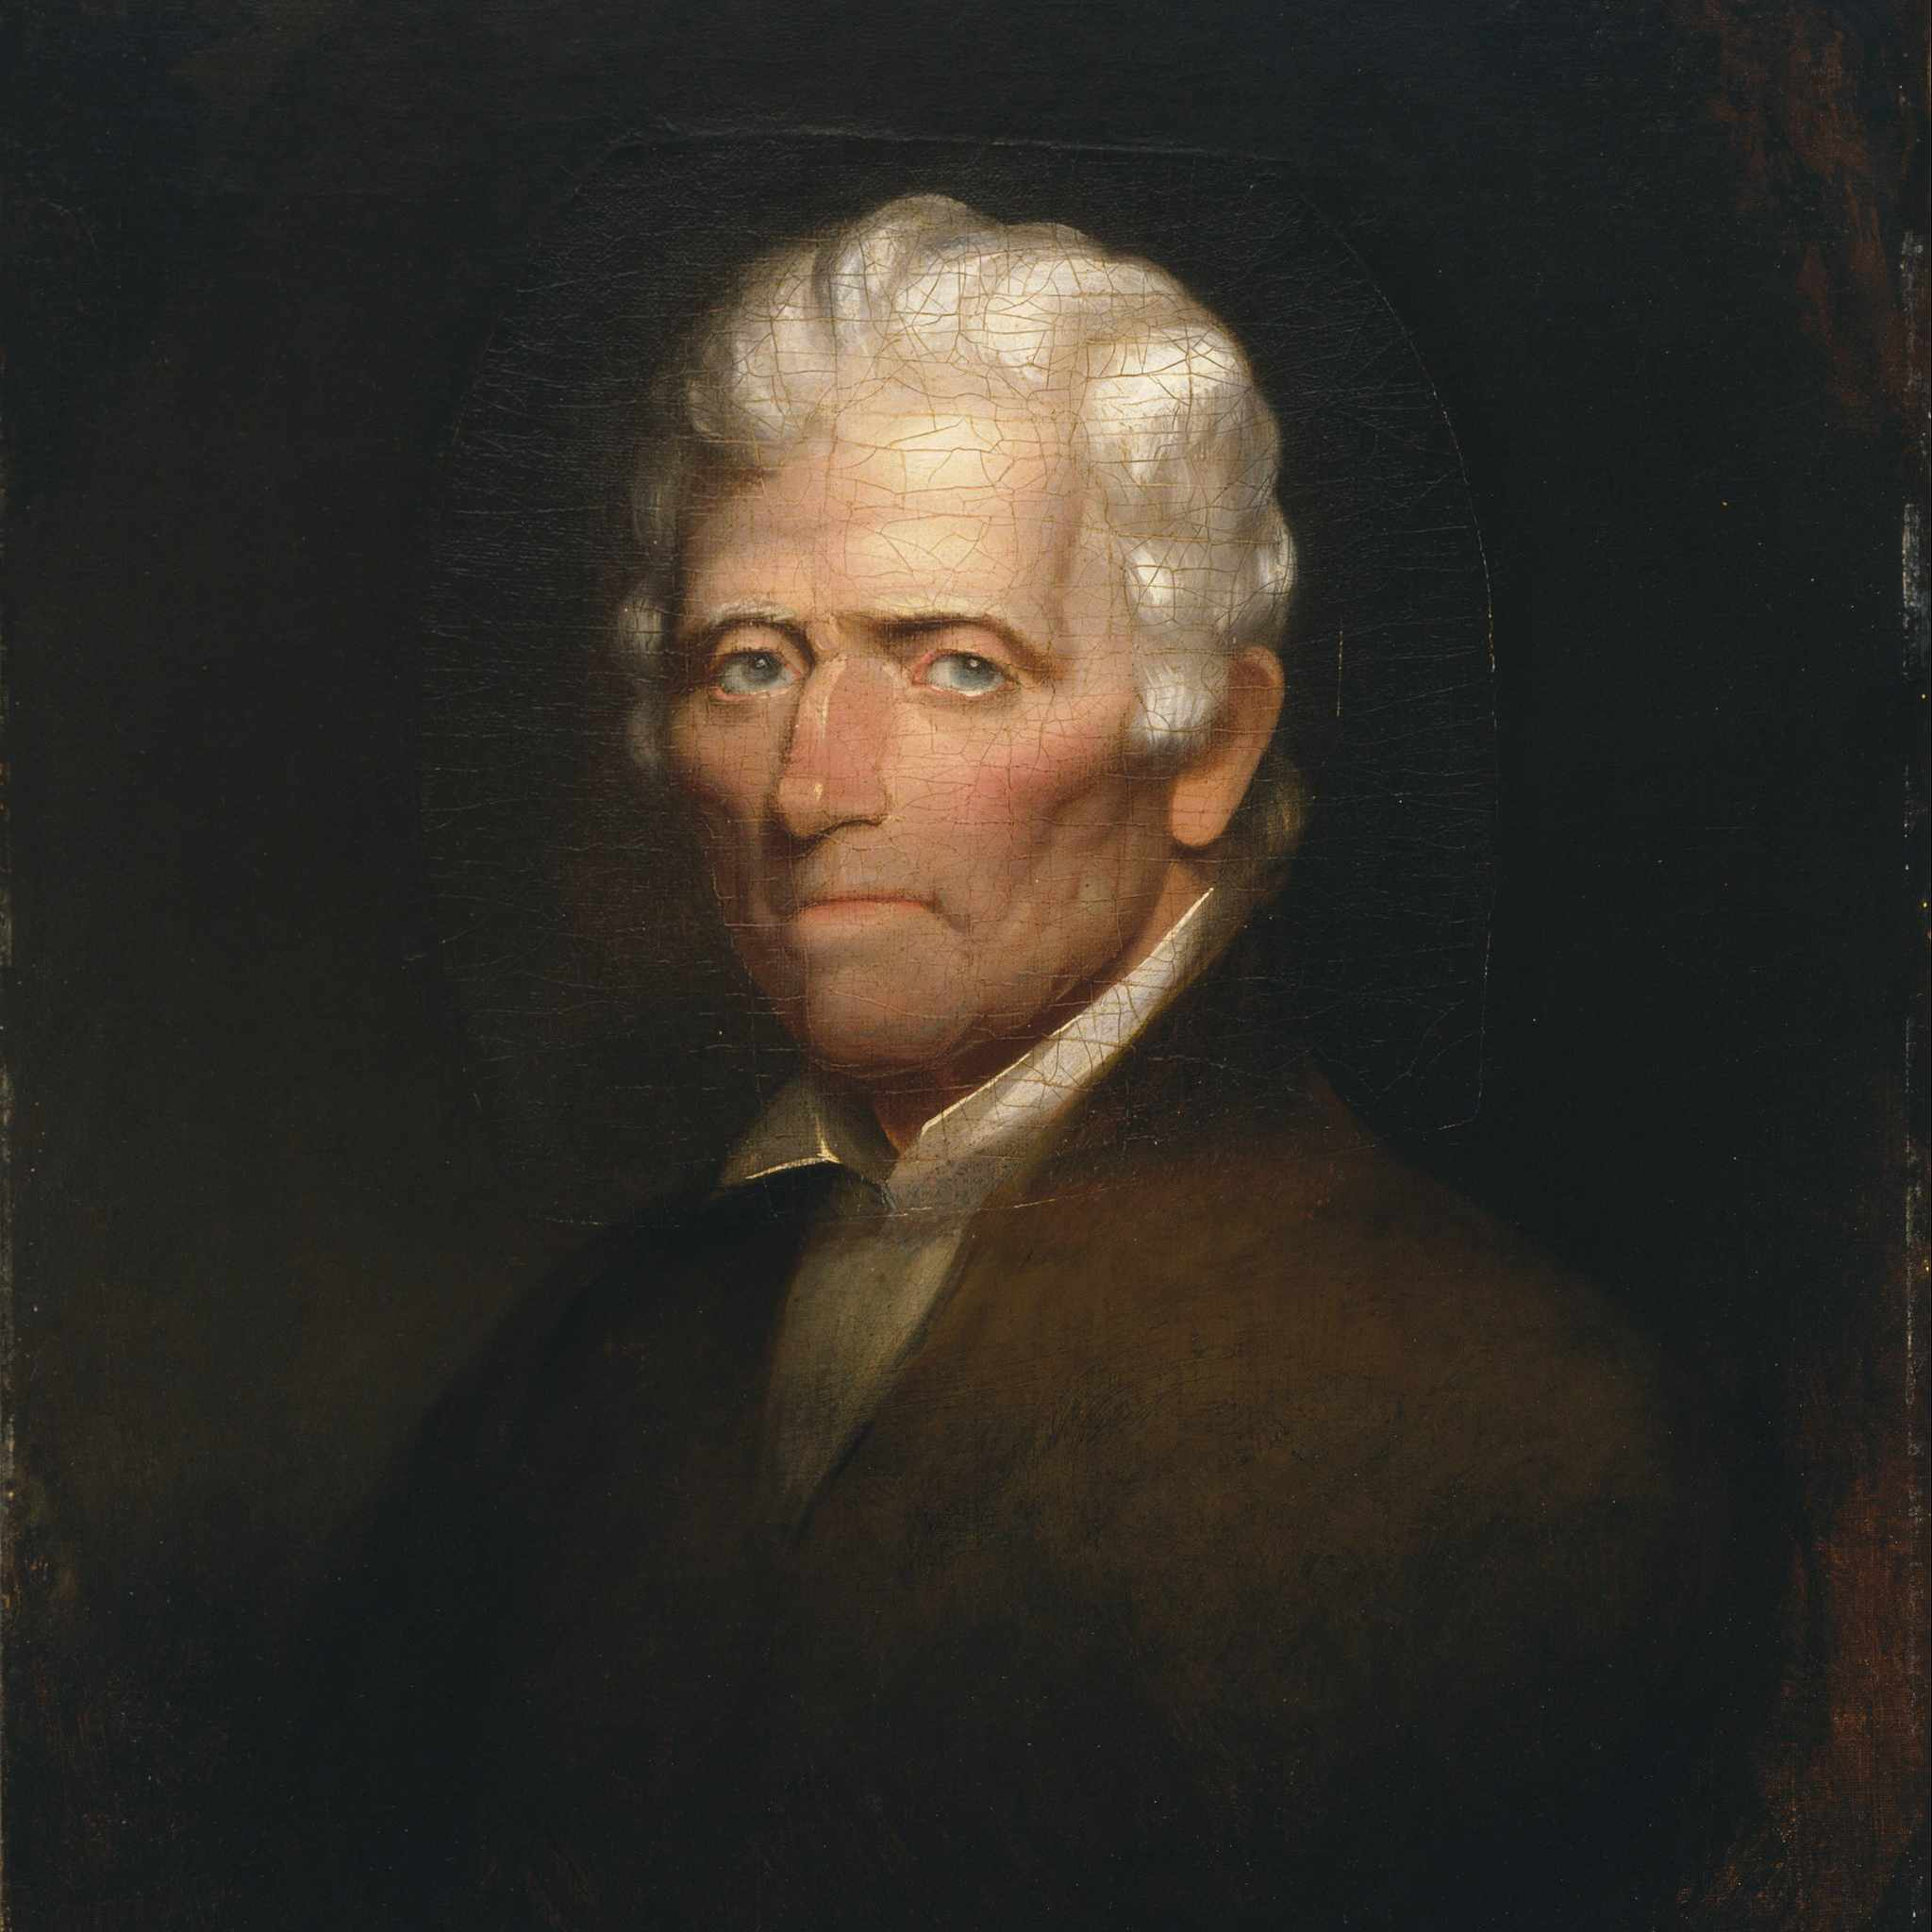 Portrait of Daniel Boone by Chester Harding